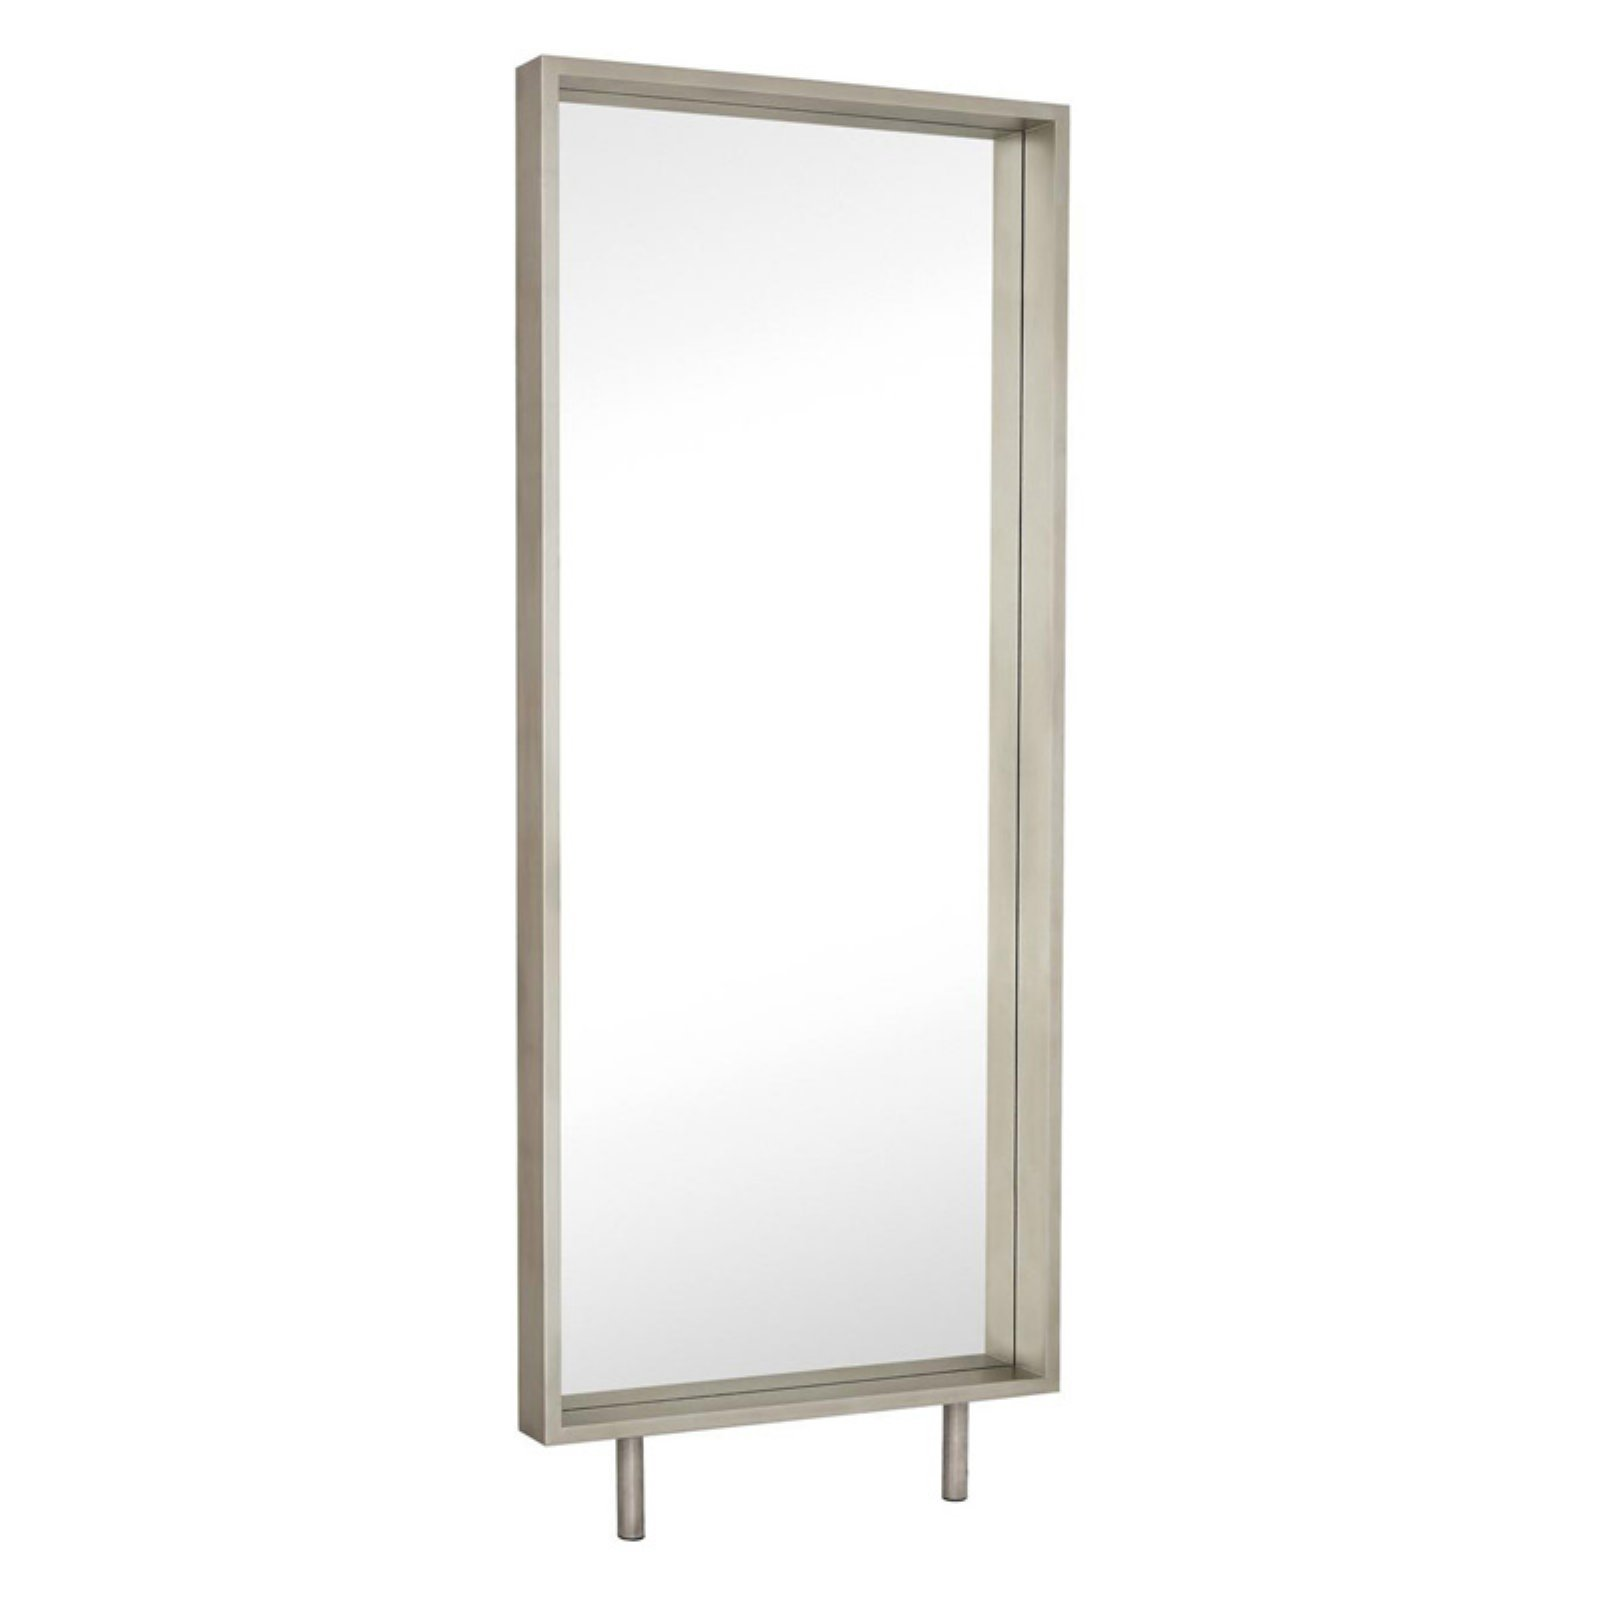 Majestic Contemporary Full Length Floor Mirror by